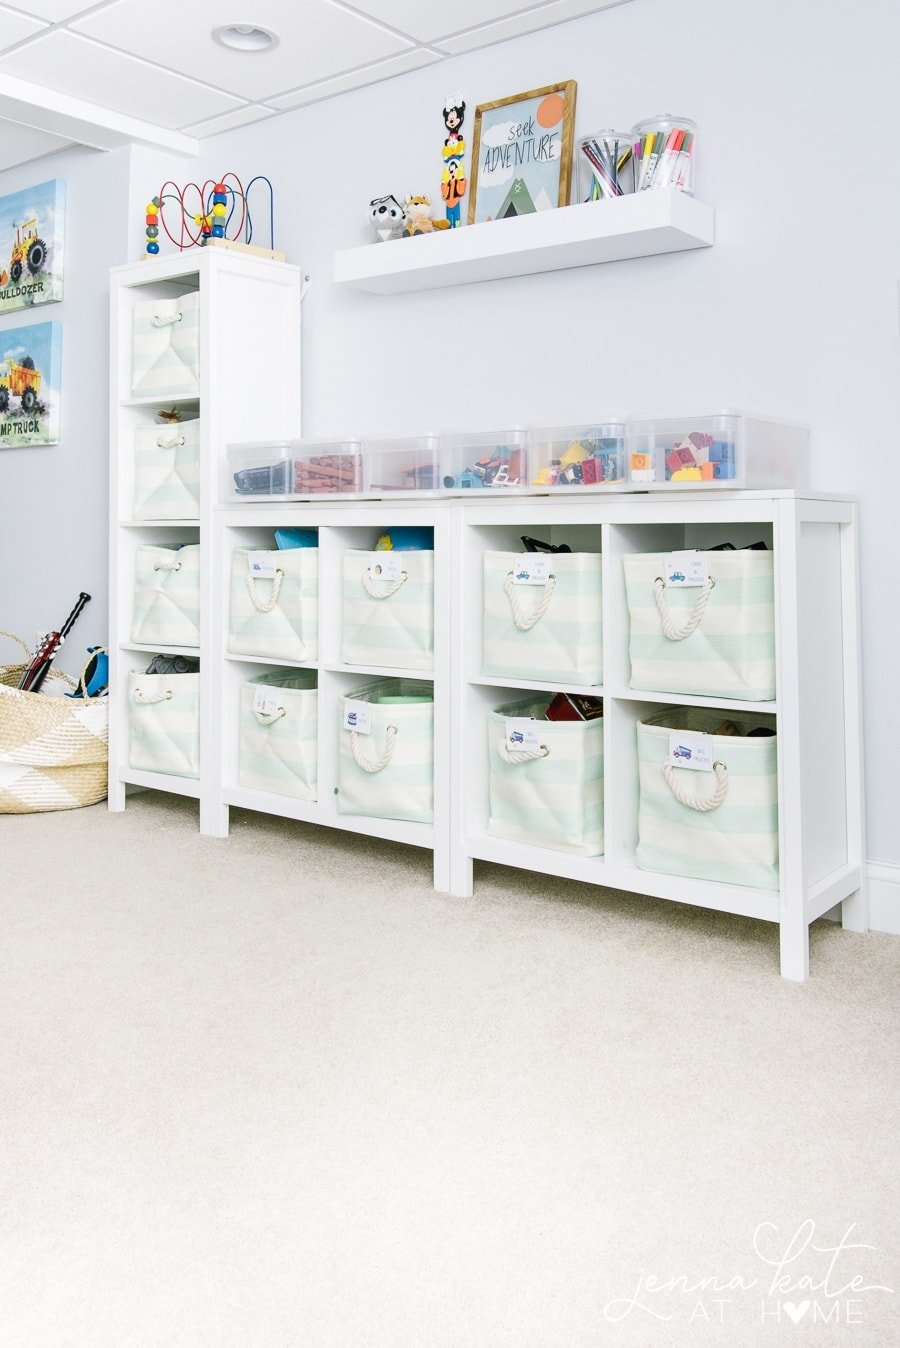 Playroom organization ideas for toddlers